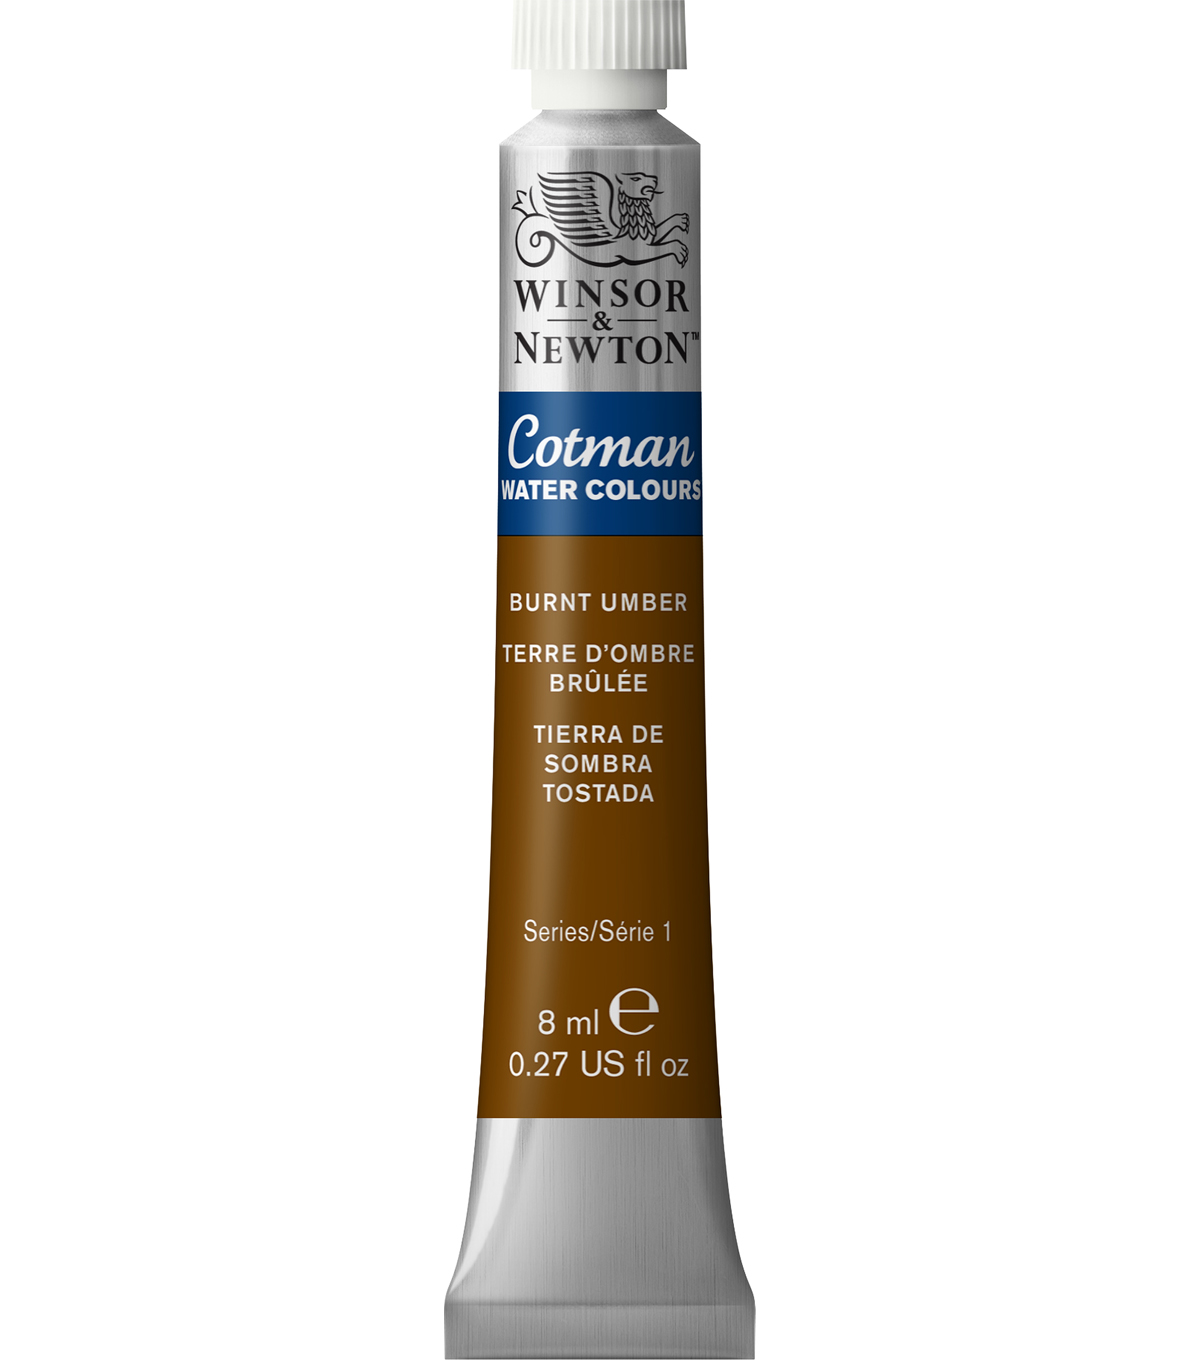 Winsor & Newton Cotman Watercolor Paint